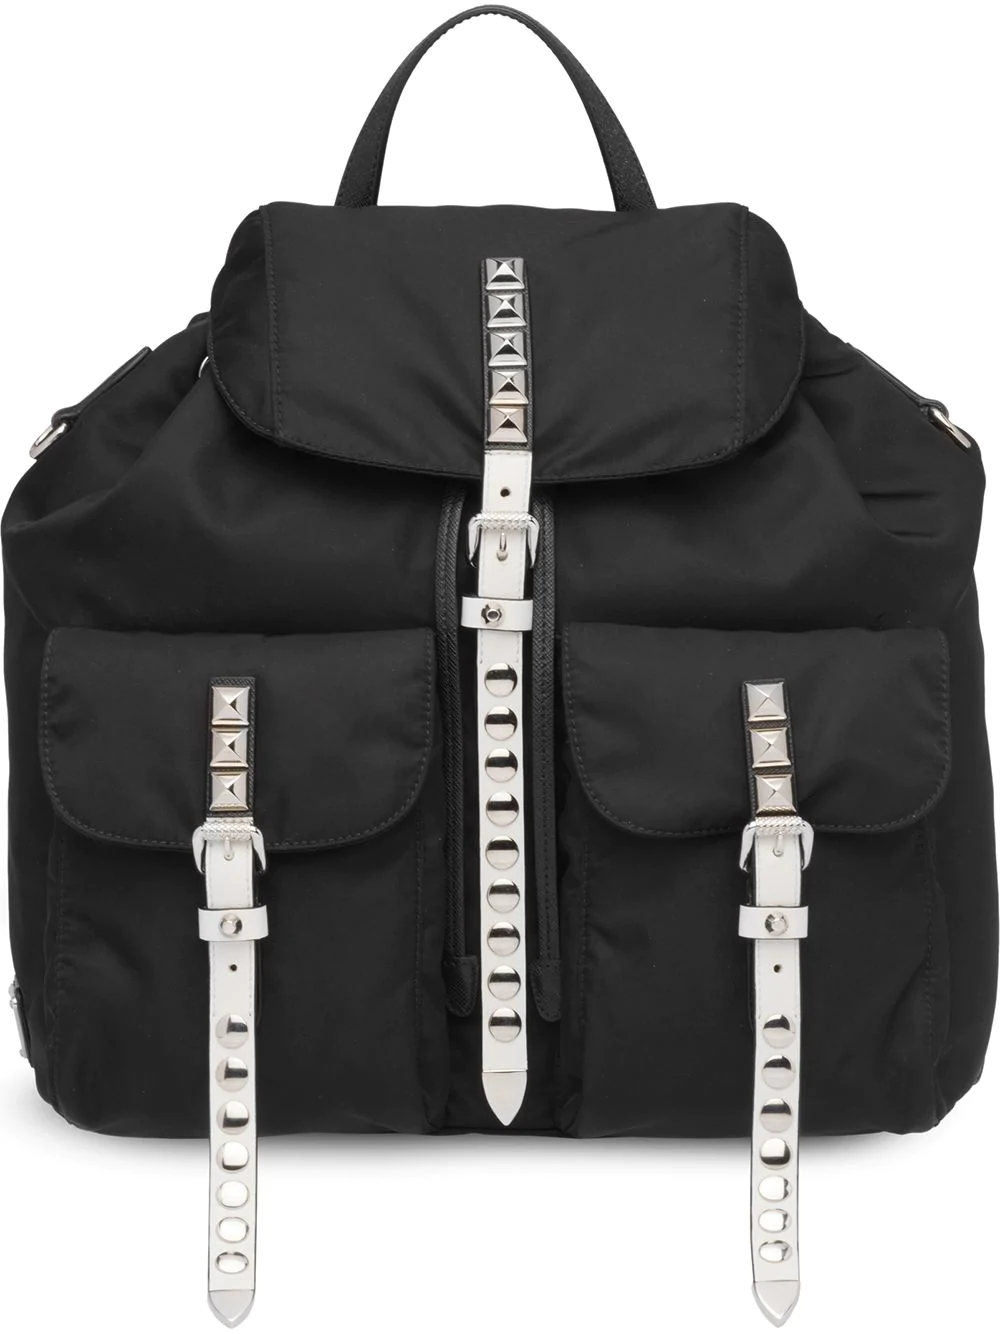 b165f276a15e20 Prada Nylon Backpack W/ Studded Straps In F0967 Black/White | ModeSens